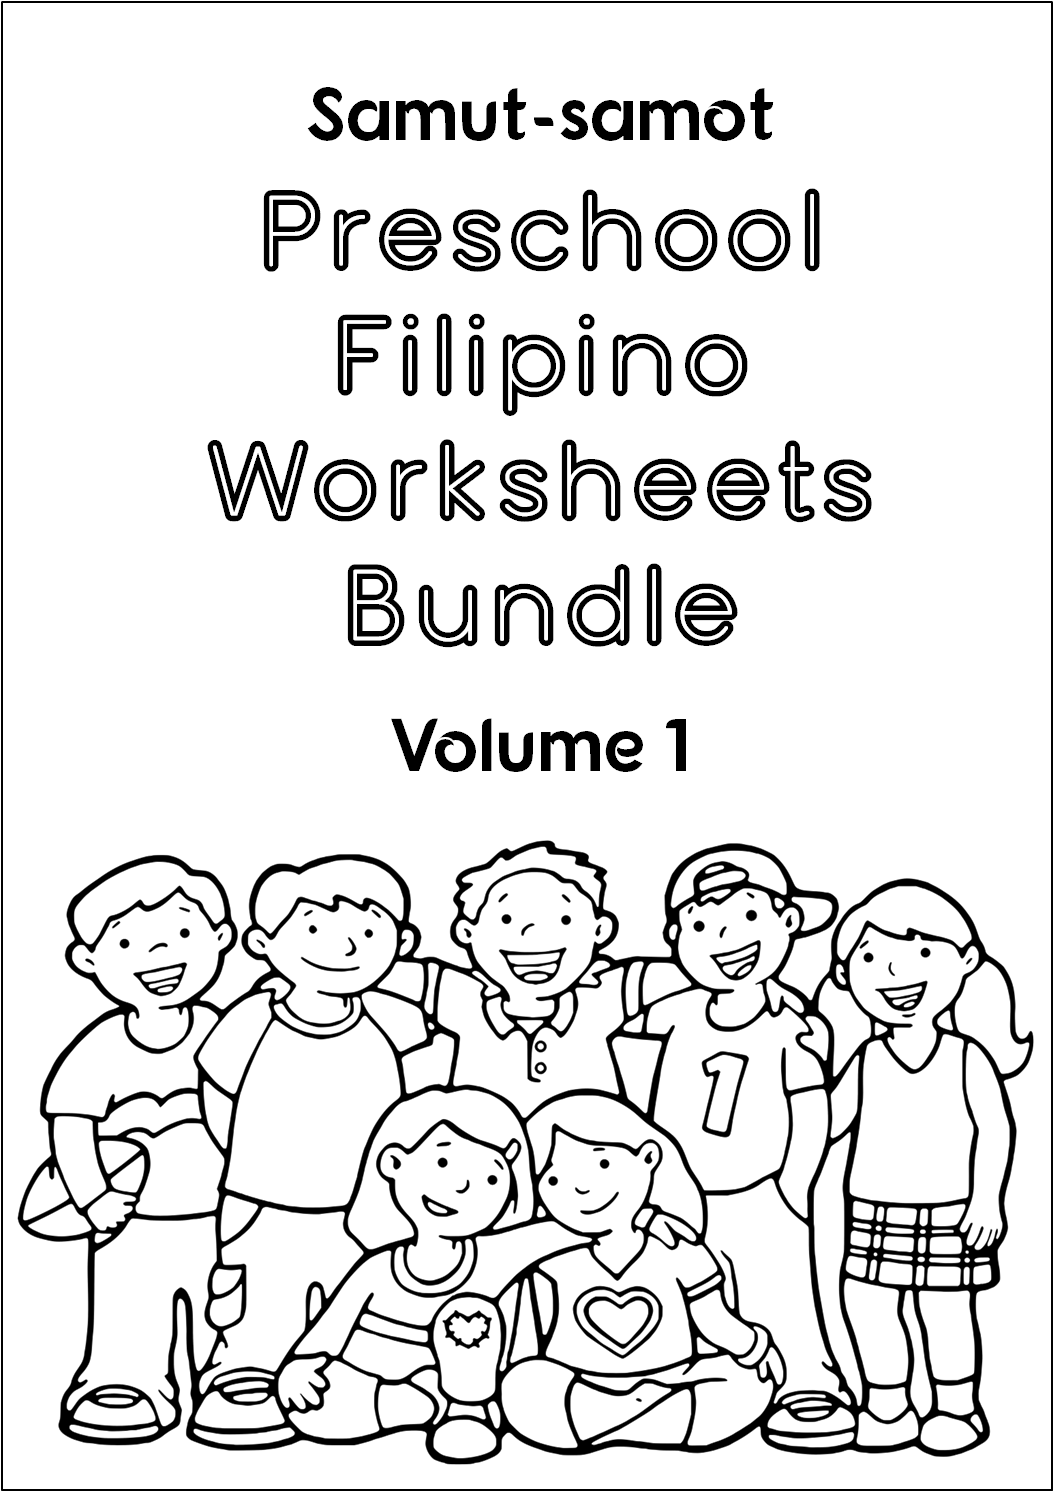 Preschool Filipino Worksheets Bundle Vol 1